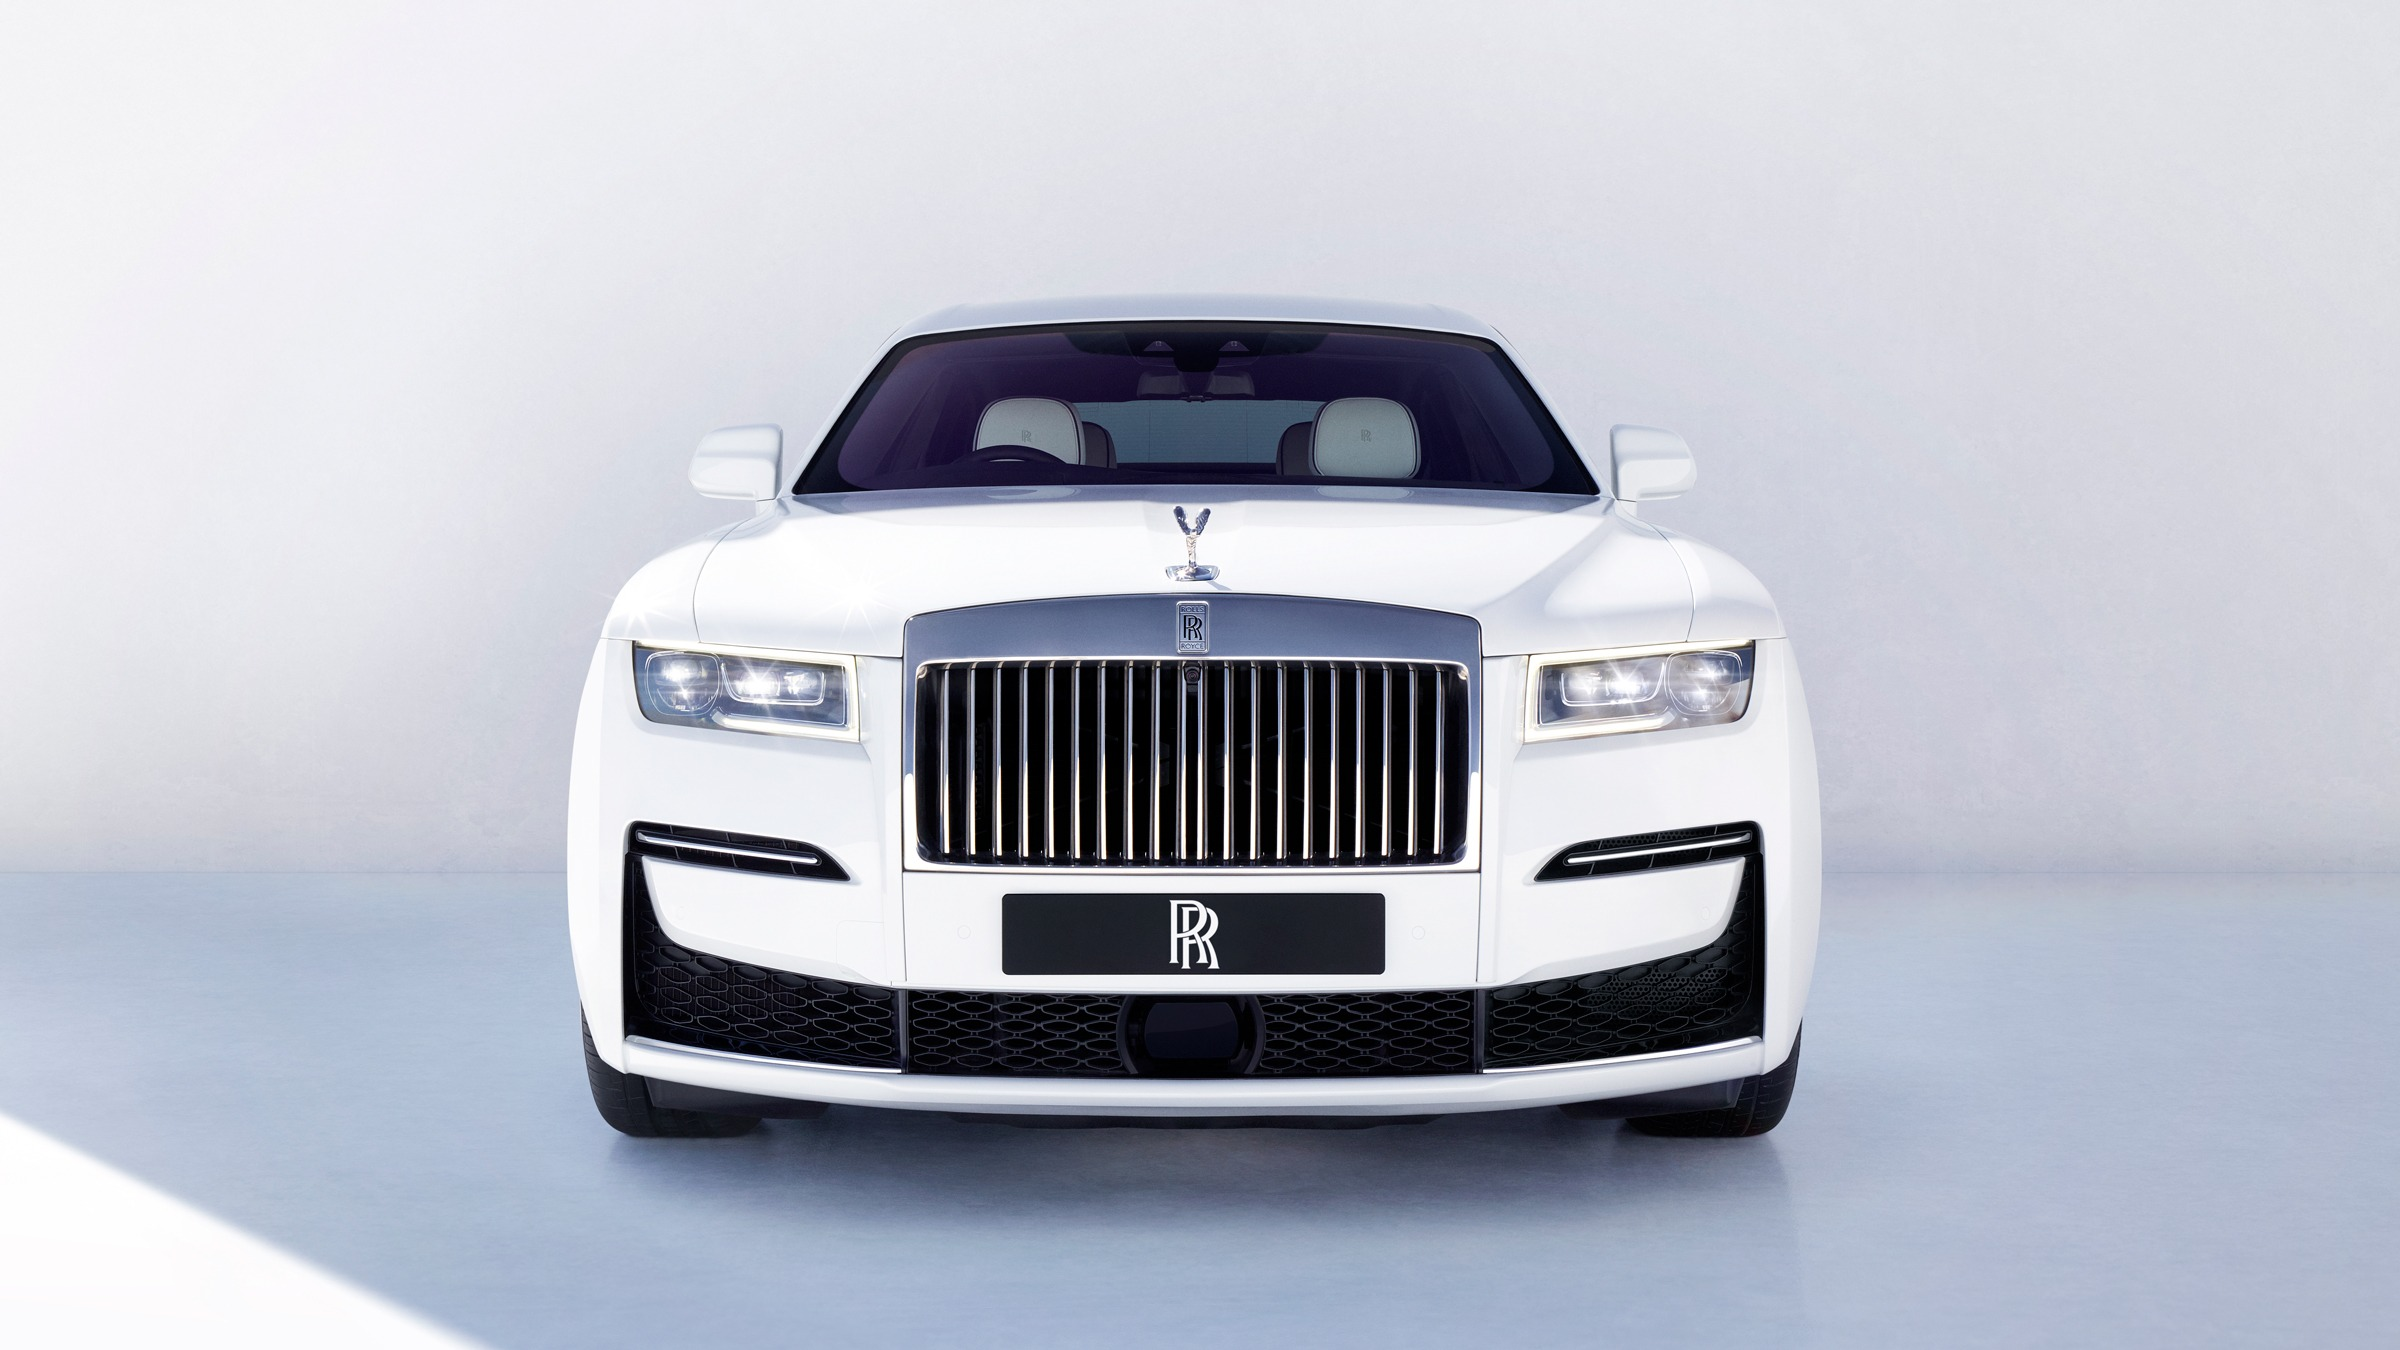 You Have To Follow These Rules If You Want To Own A Rolls-Royce